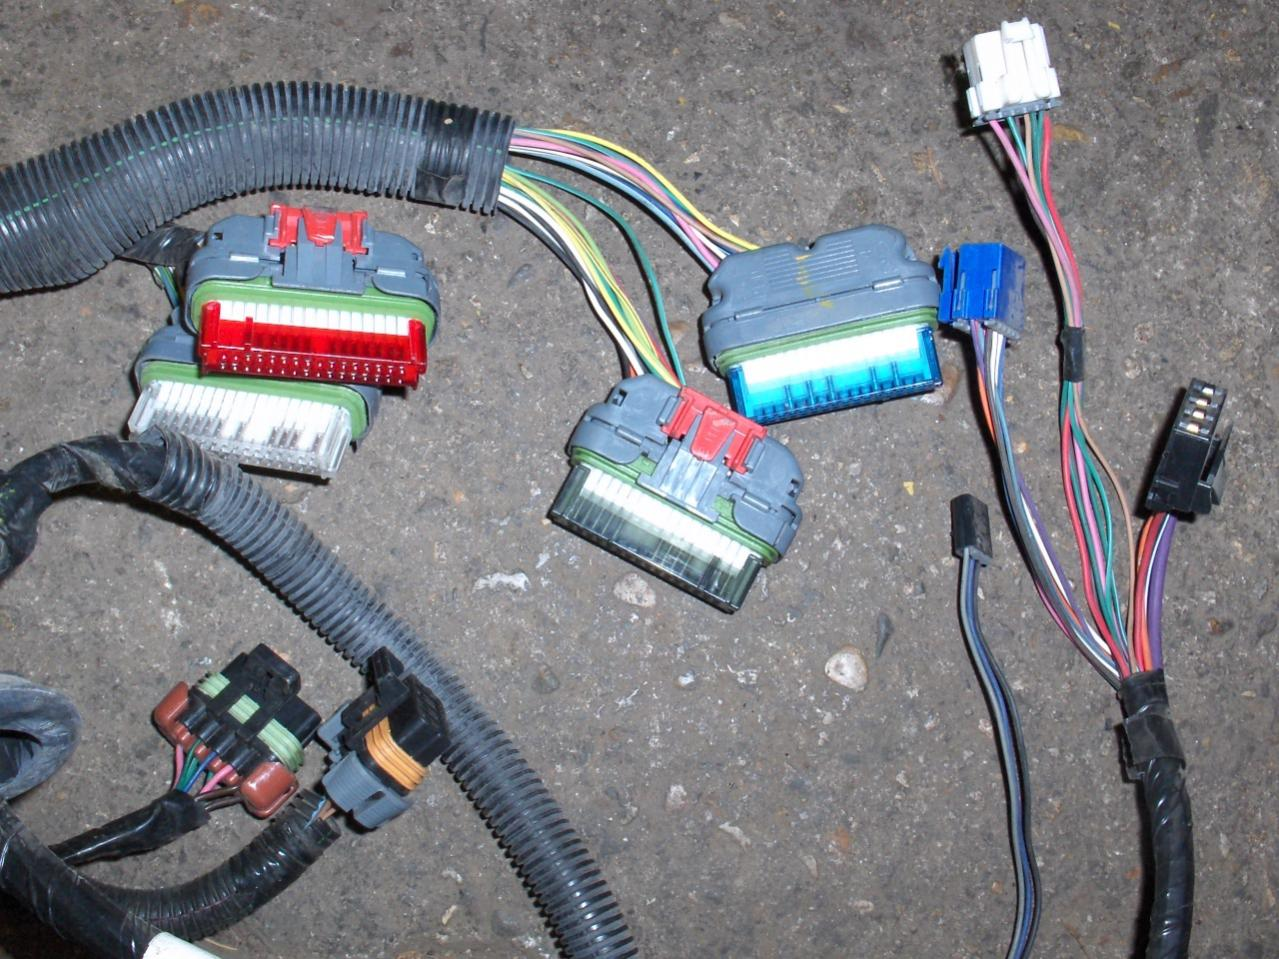 hight resolution of  97 camaro z28 lt1 4l60e engine wire harness hpim2862 jpg